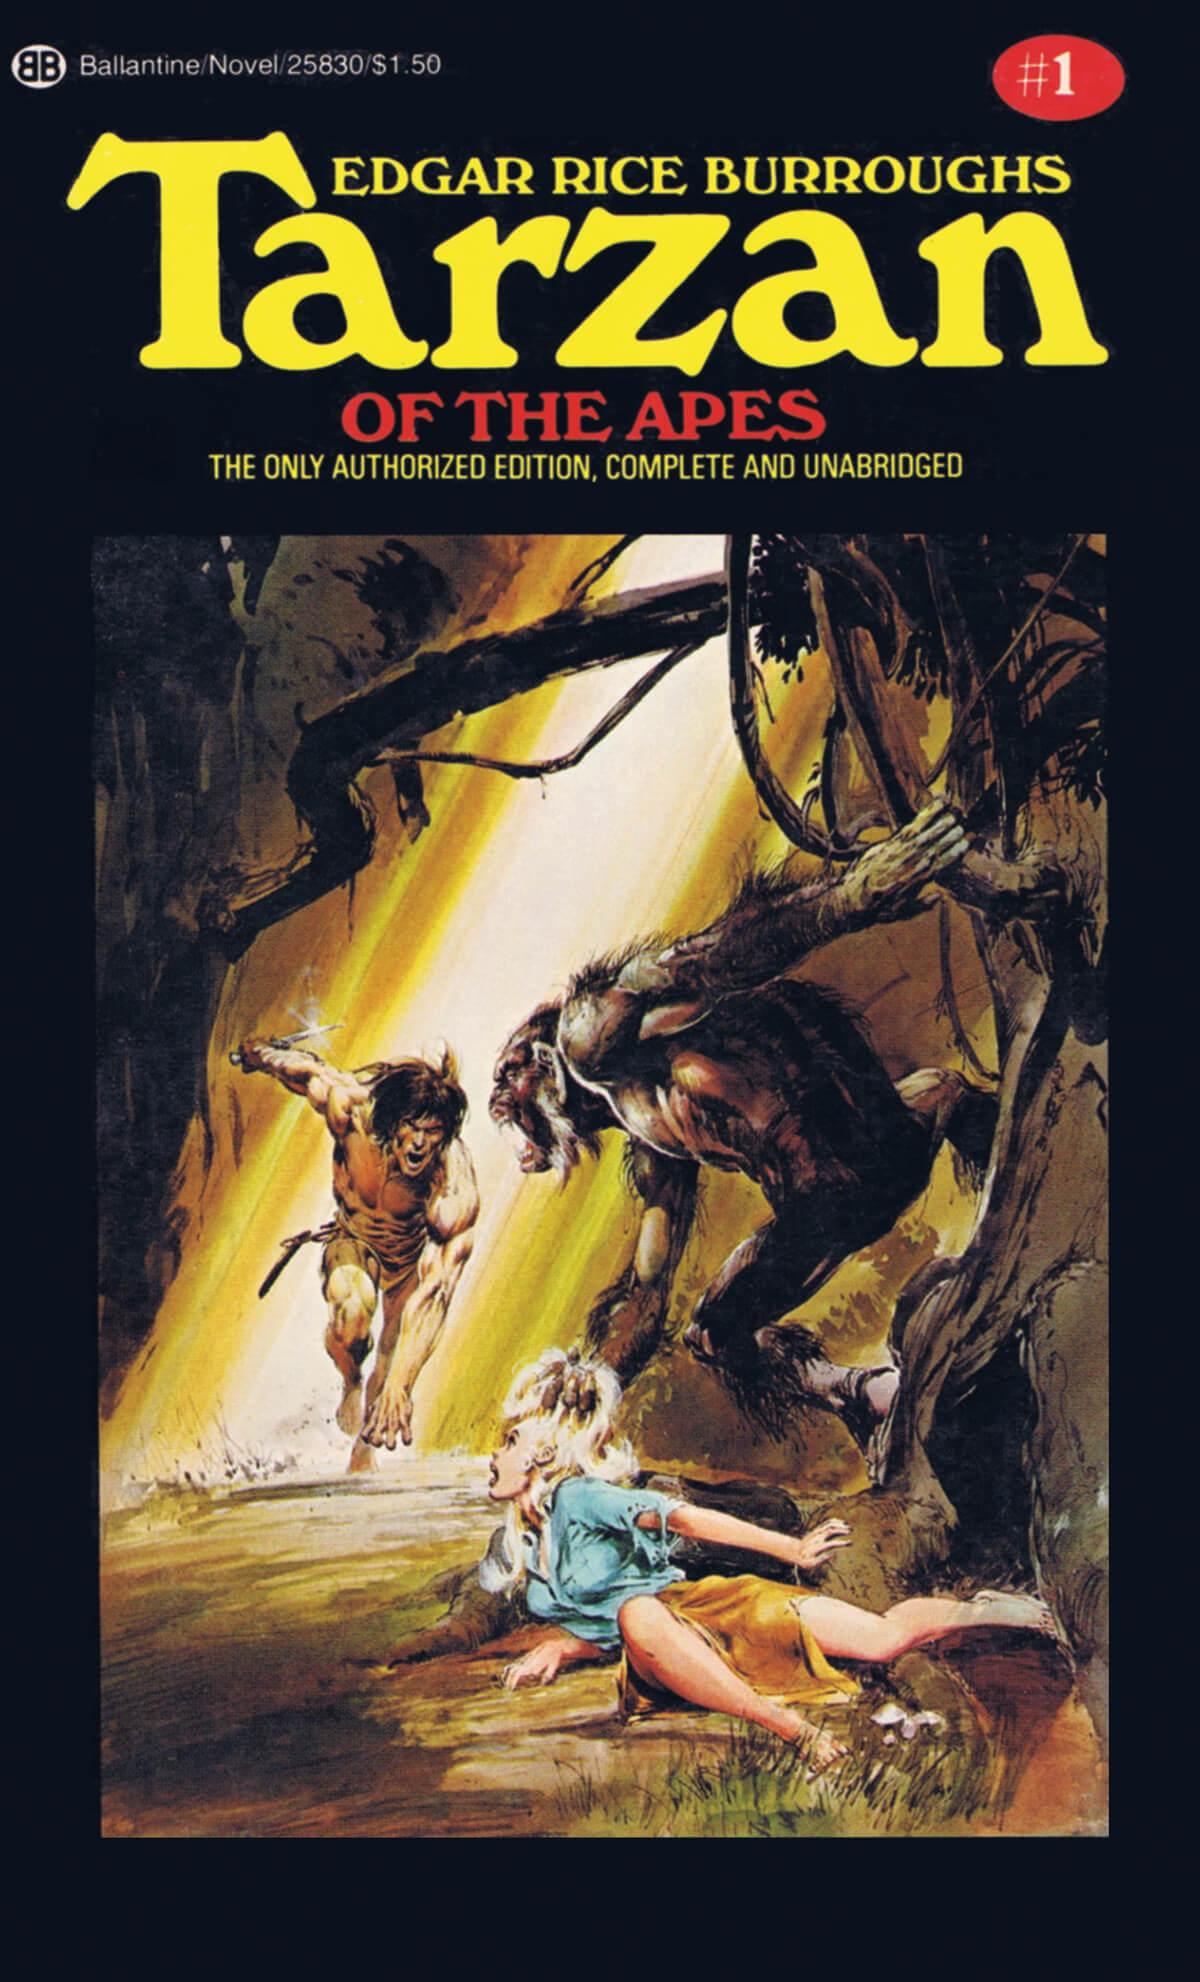 Neal Adams 1 Tarzan Of The Apes Cover